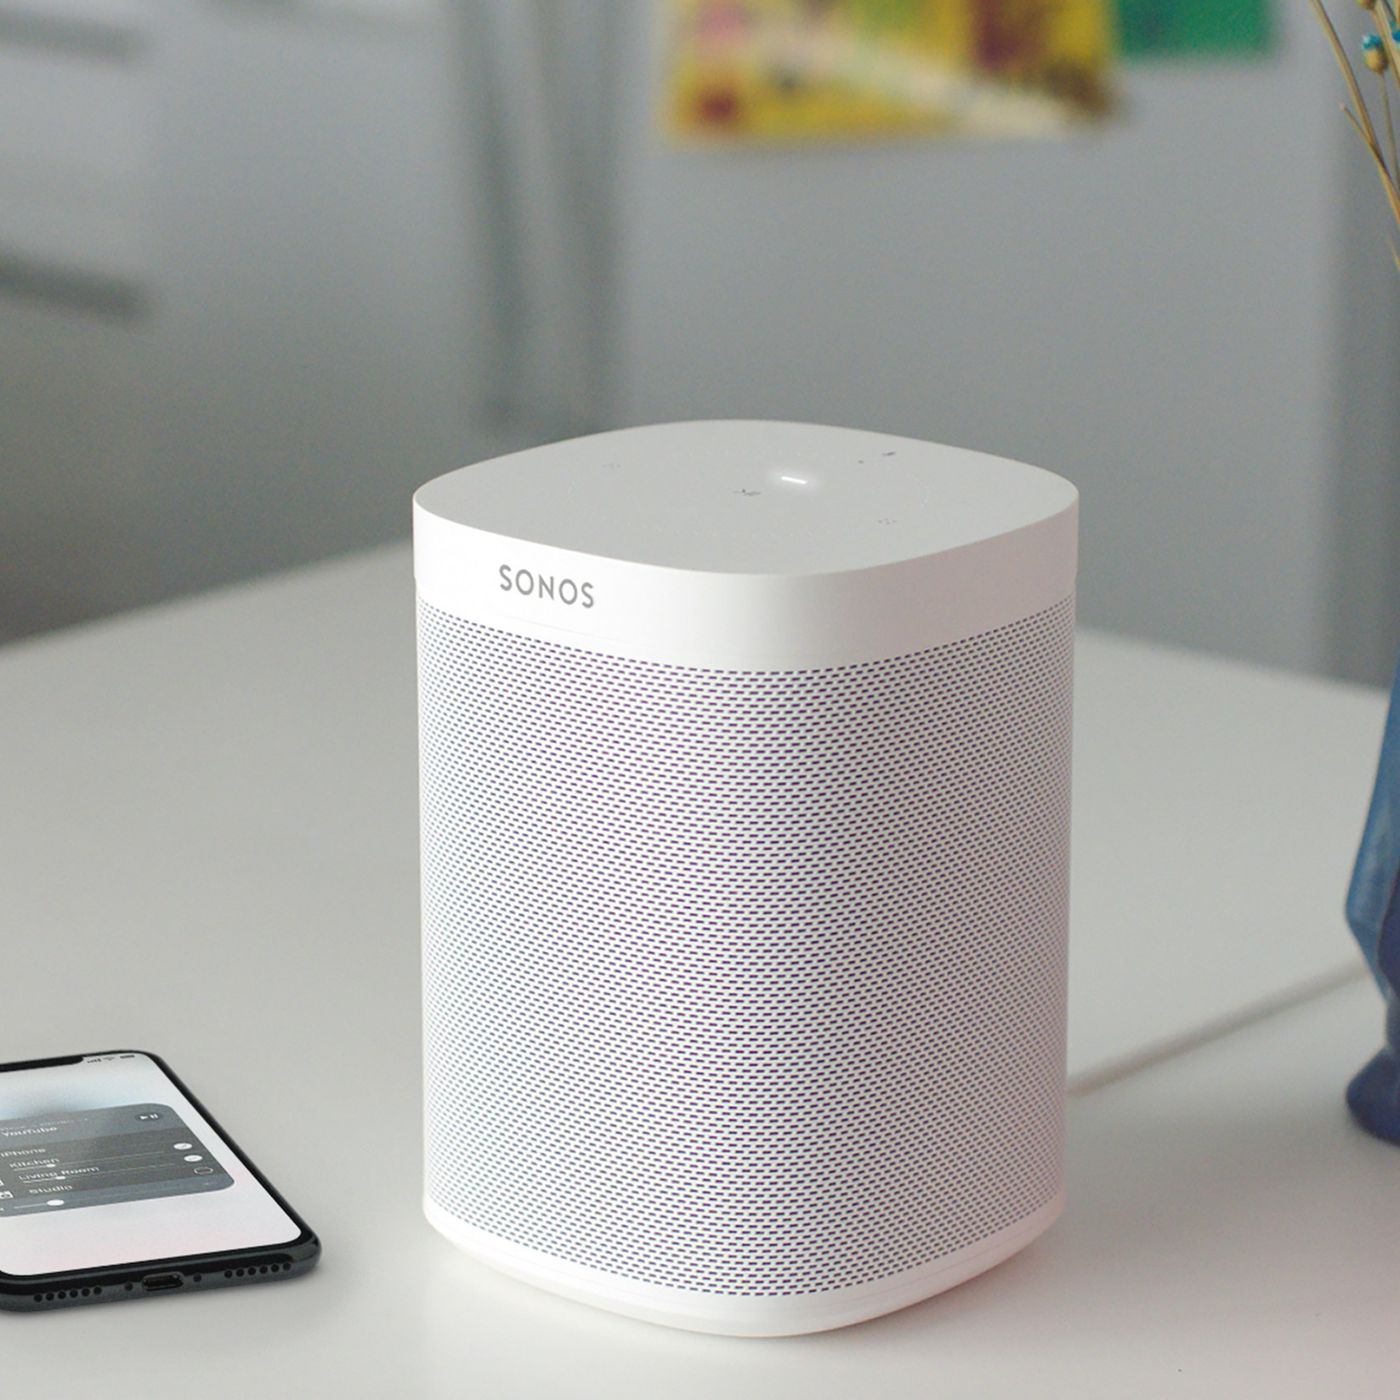 How to set up AirPlay on your Sonos speakers - The Verge